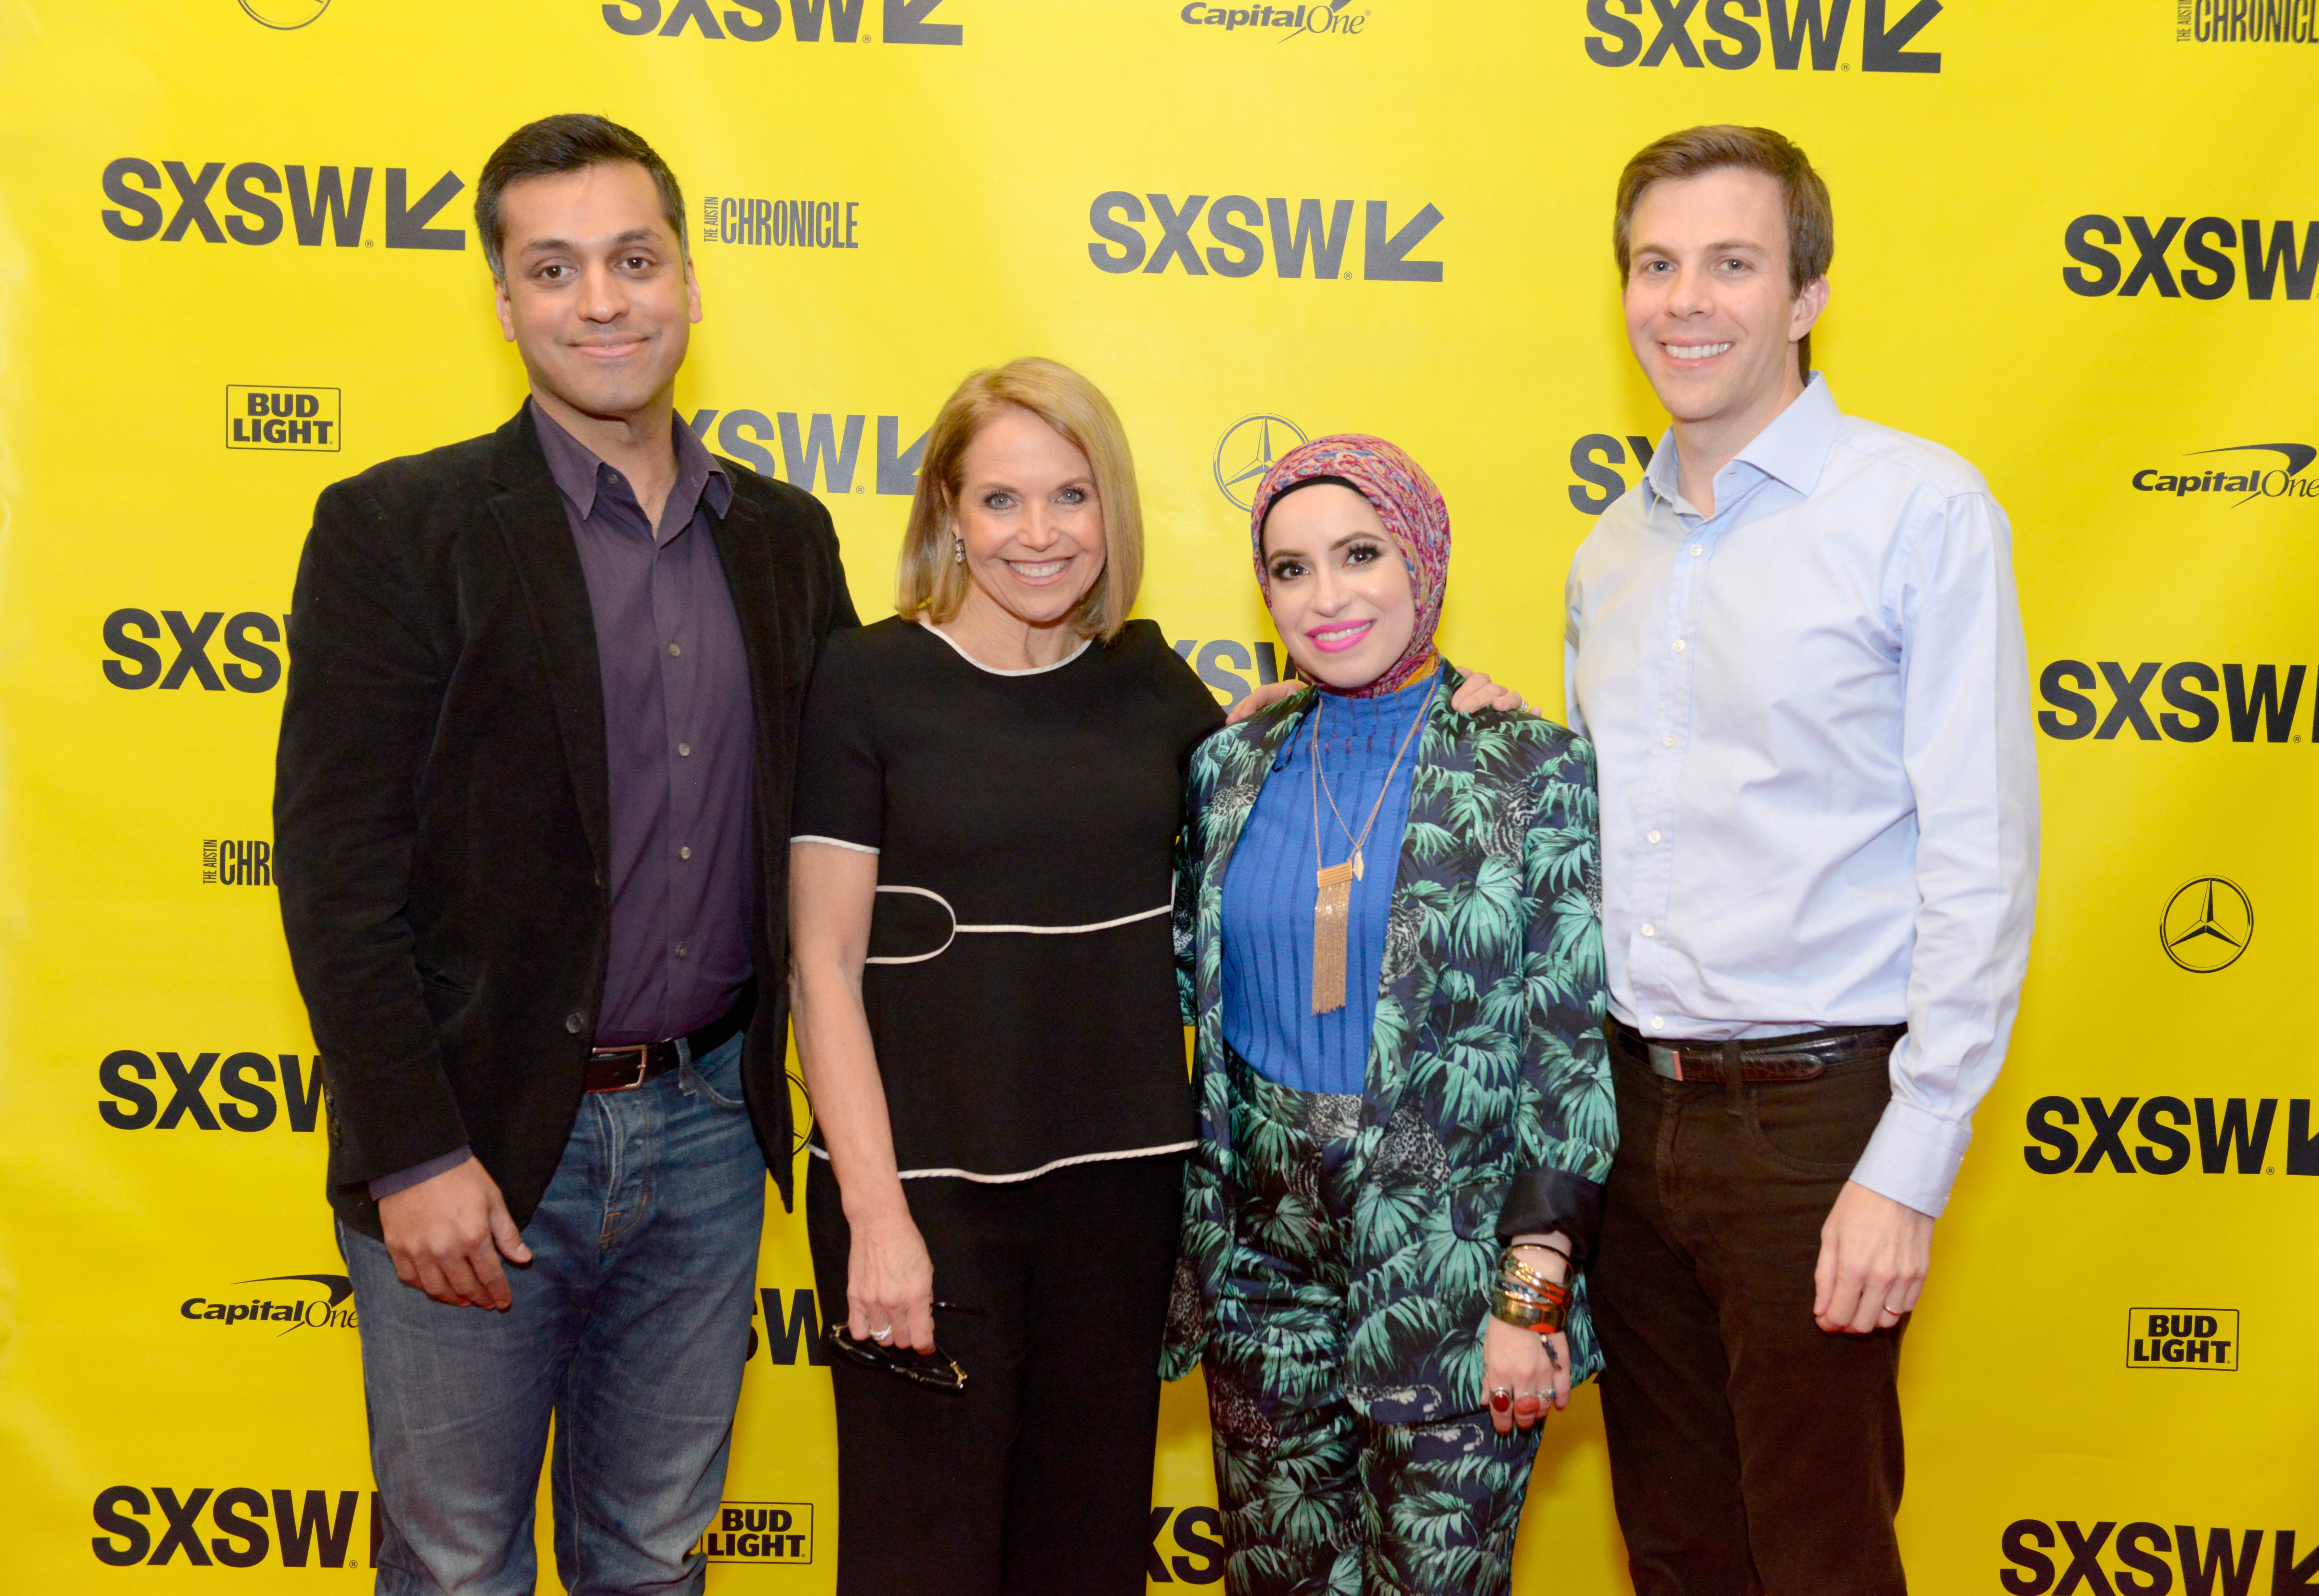 Wajahat Ali, Katie Couric, Mona Haydar and Brian Goldsmith attend Katie Couric podcast LIVE: The Muslim Next Door during SXSW at Austin Convention Center on March 11, 2018 in Austin, Texas. (Photo by Nicola Gell/Getty Images for SXSW)